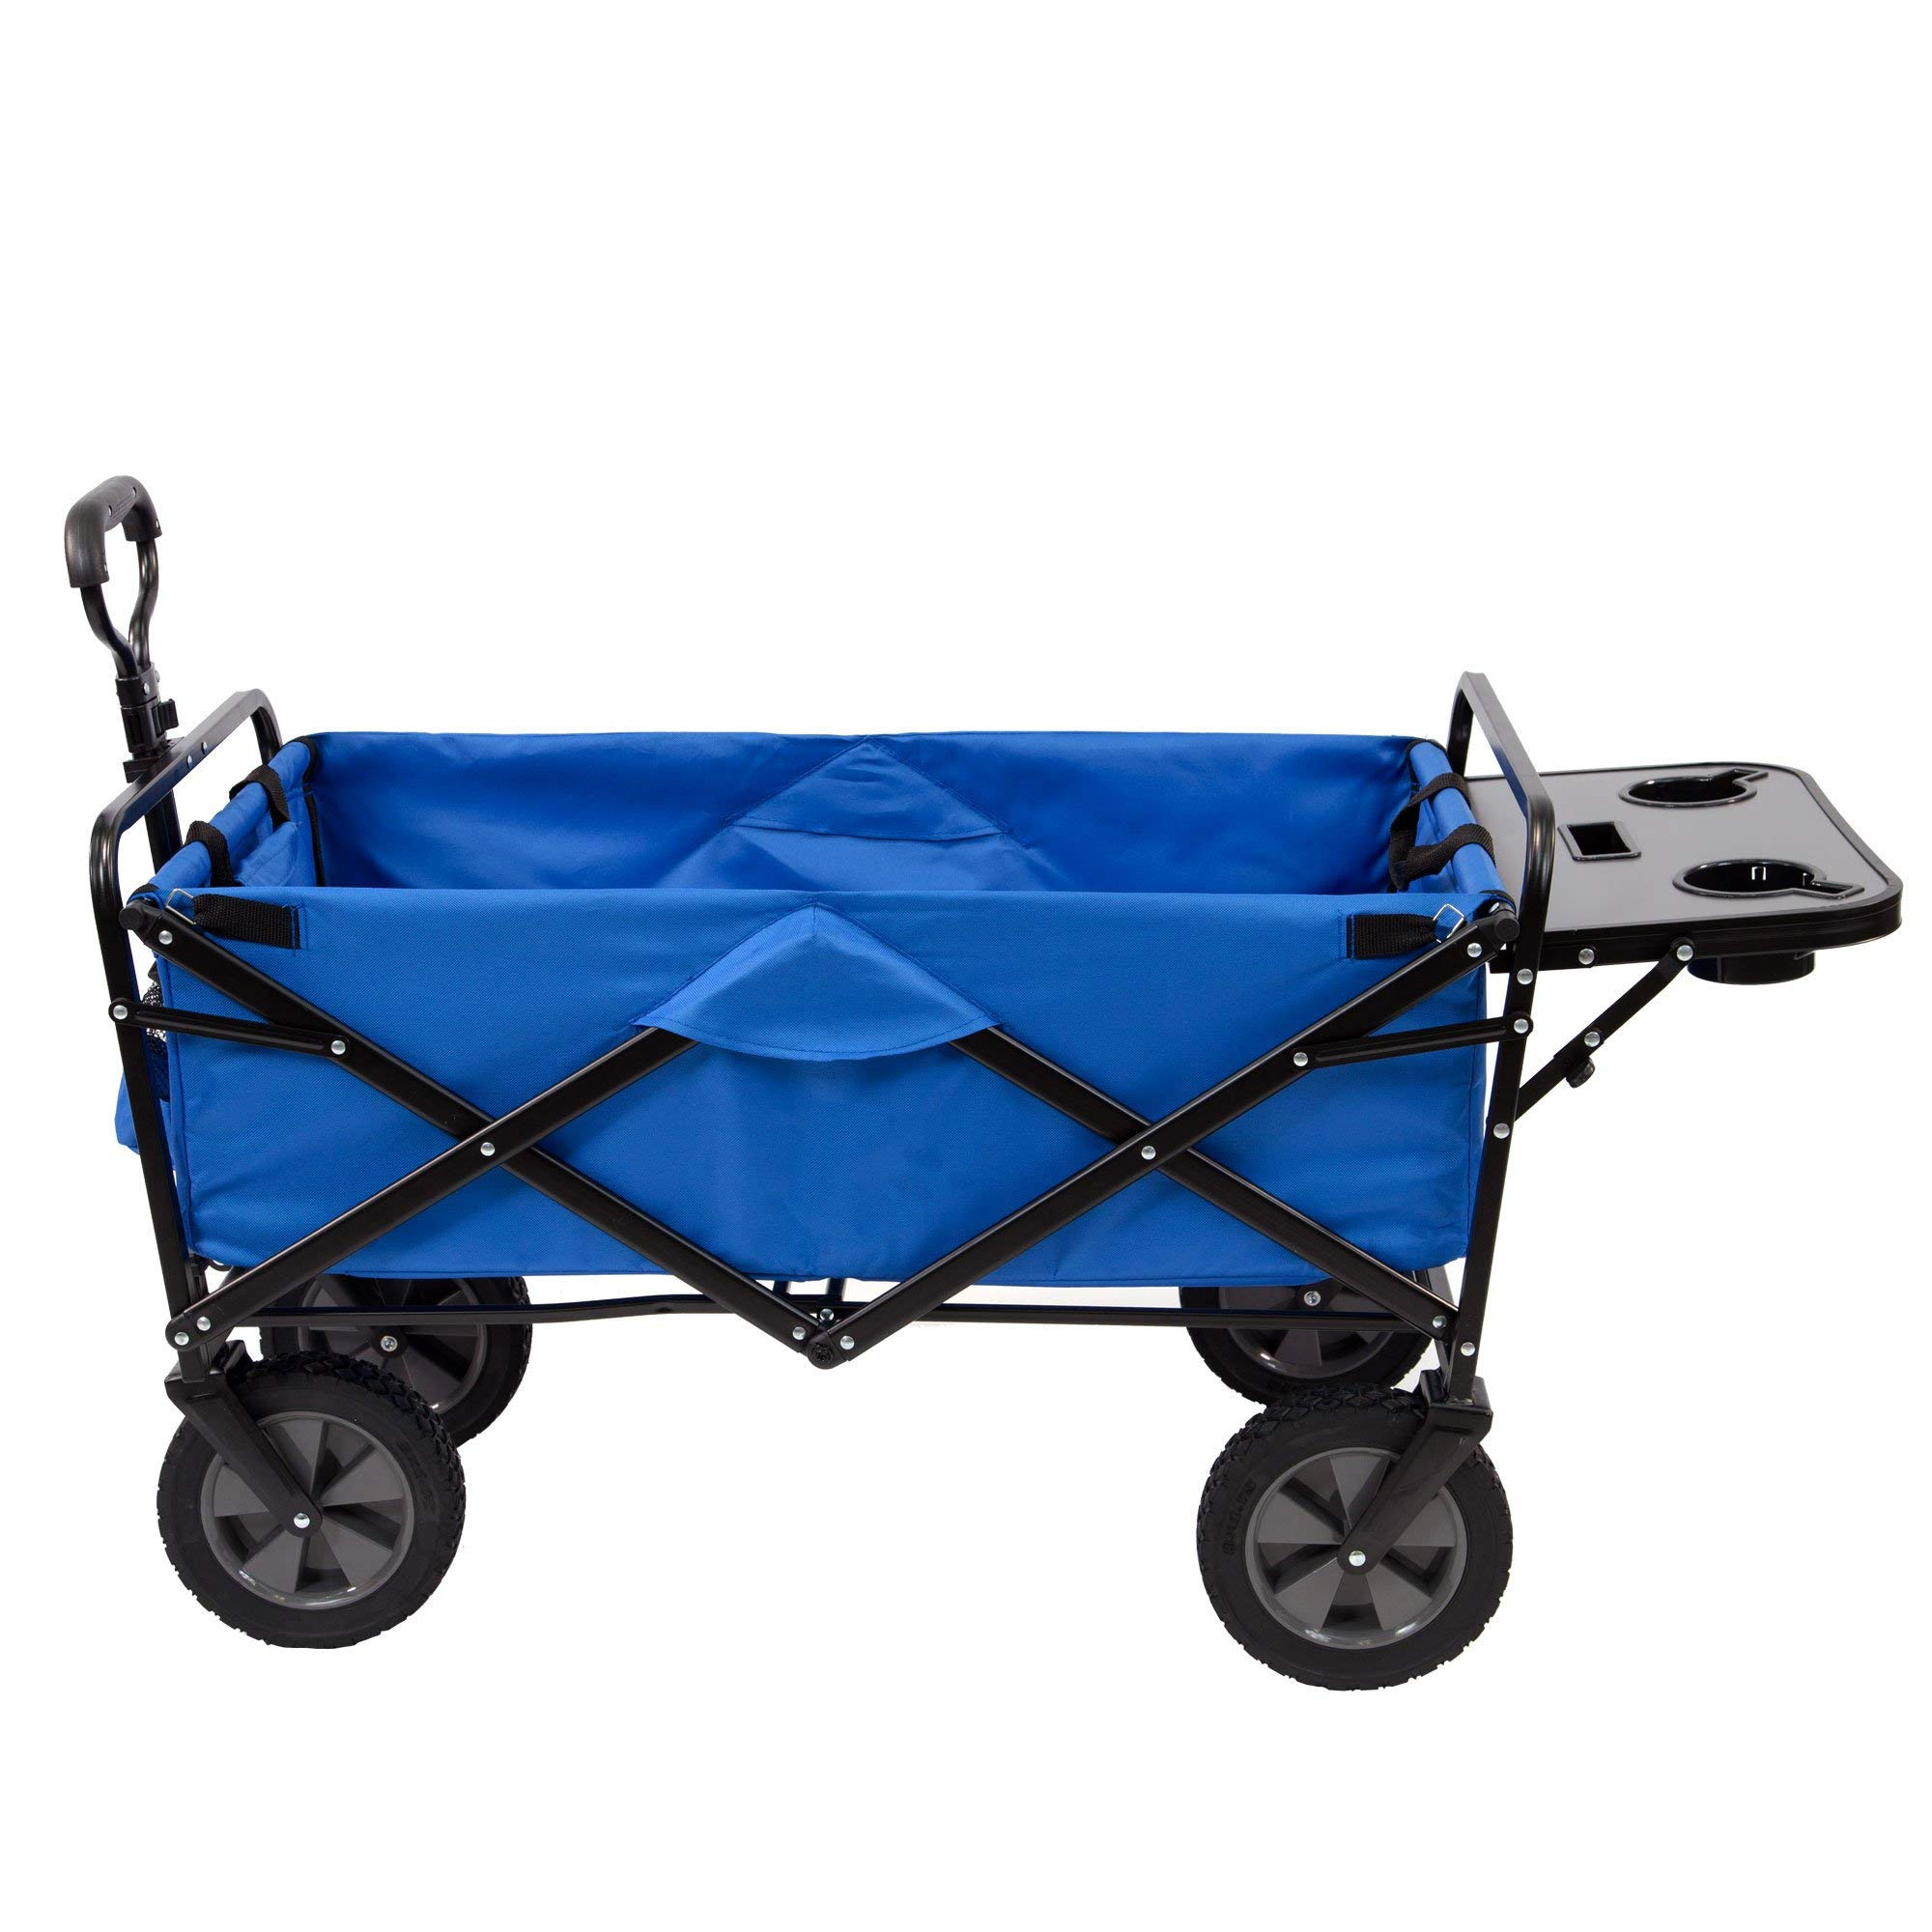 Mac Sports Folding Garden Utility Wagon w/Table, Blue by Mac Sports